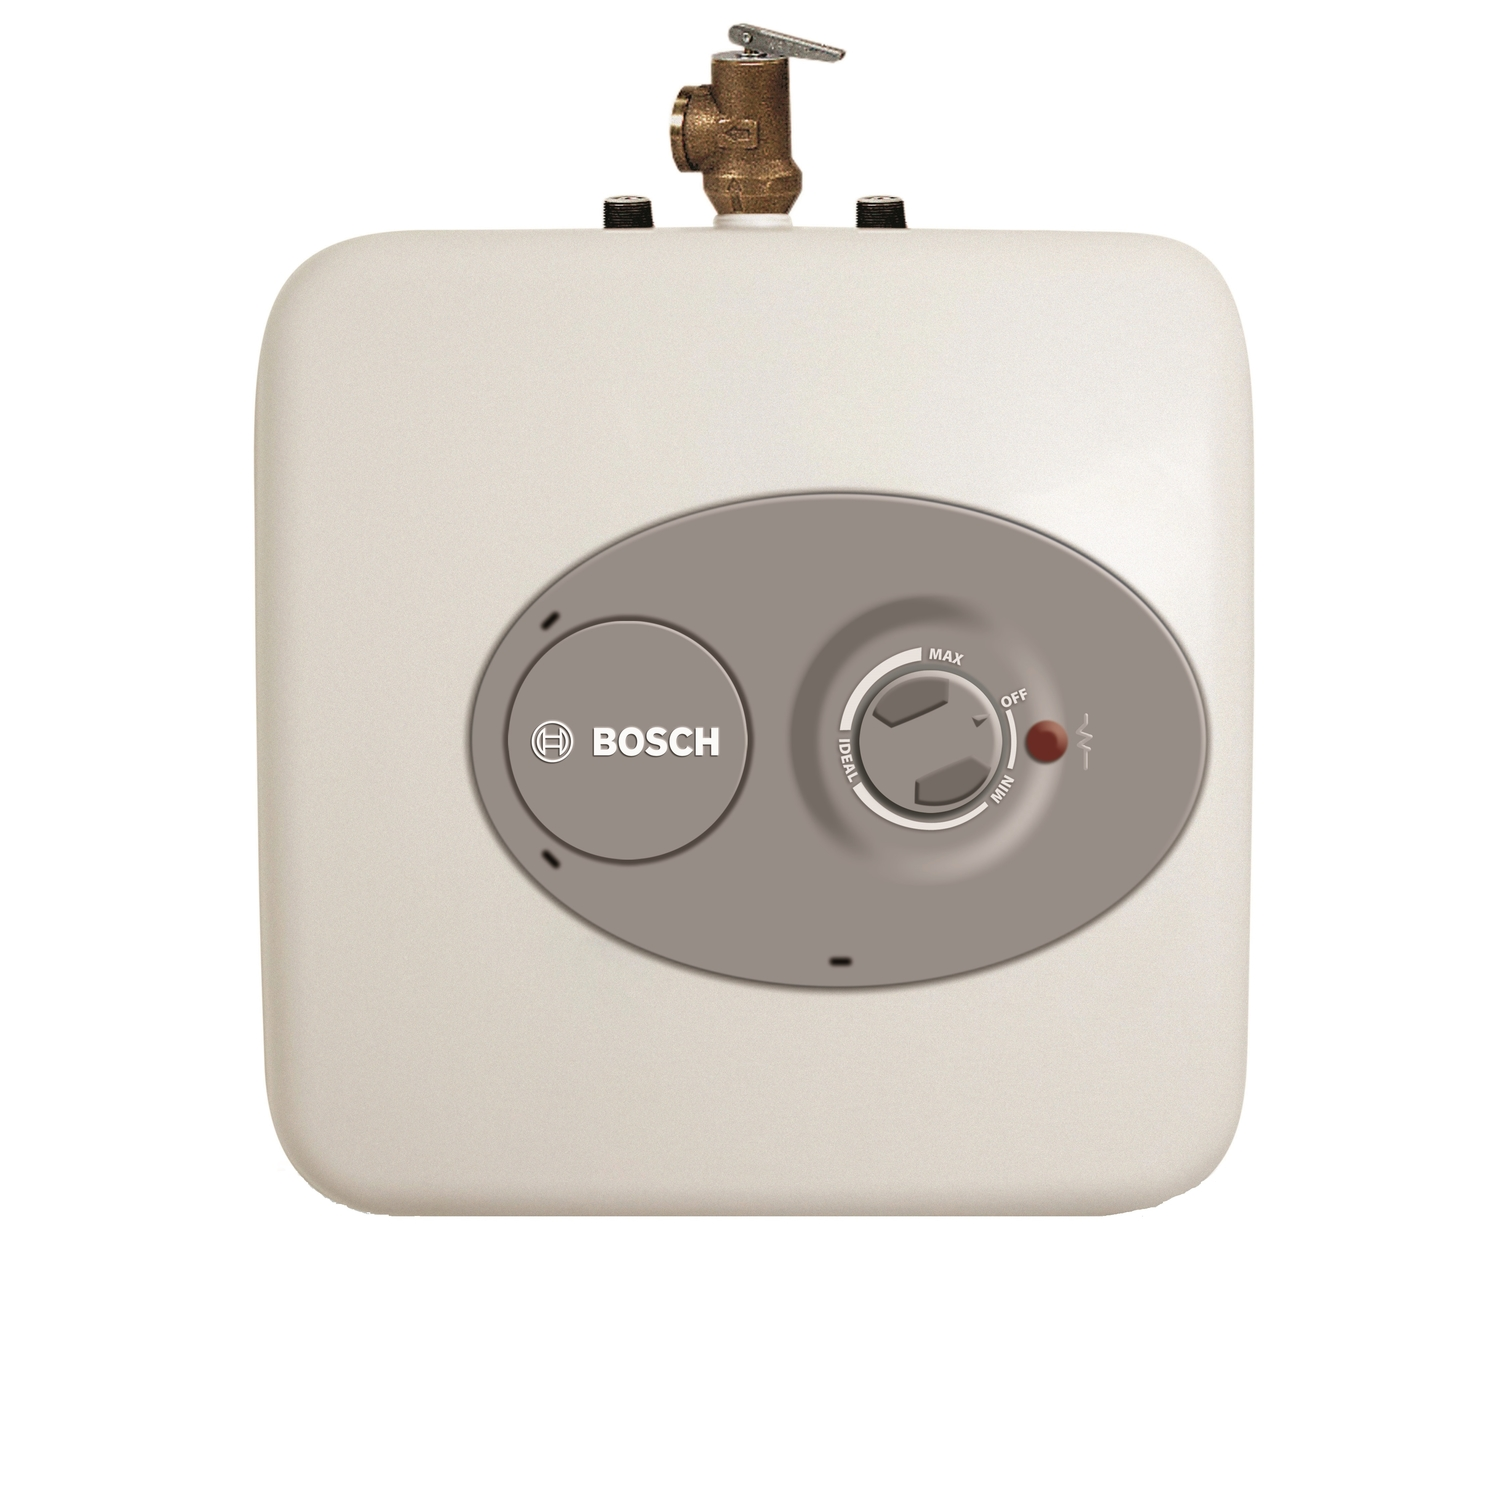 Bosch  Electric  Water Heater  17-1/2 in. H x 14-1/2 in. L x 17-1/2 in. W 7 gal. 120 volts